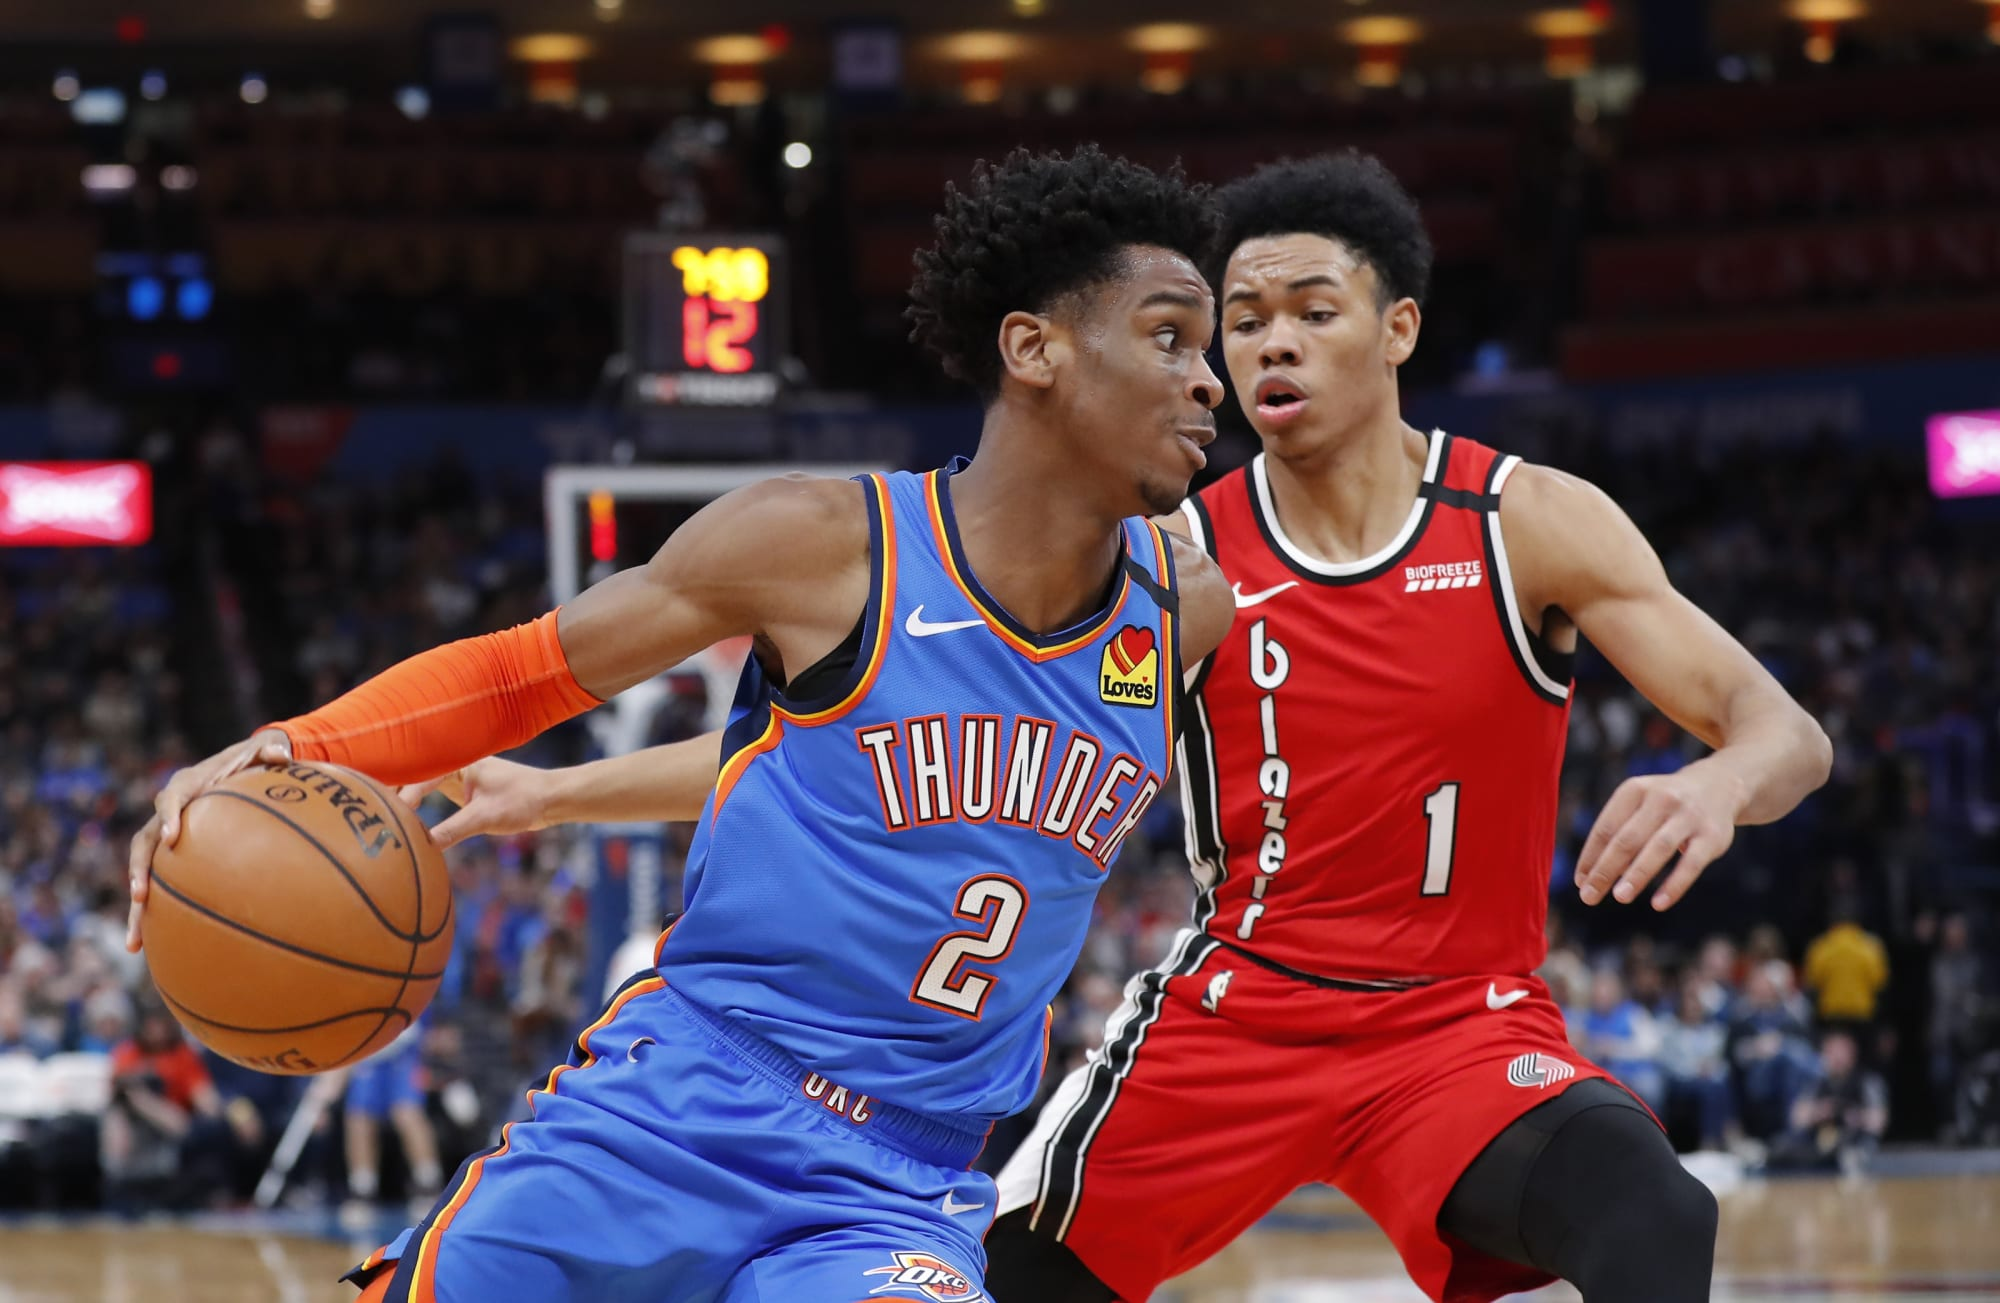 Portland Trail Blazers vs. Oklahoma City Thunder: Preview, injury report, and how to watch